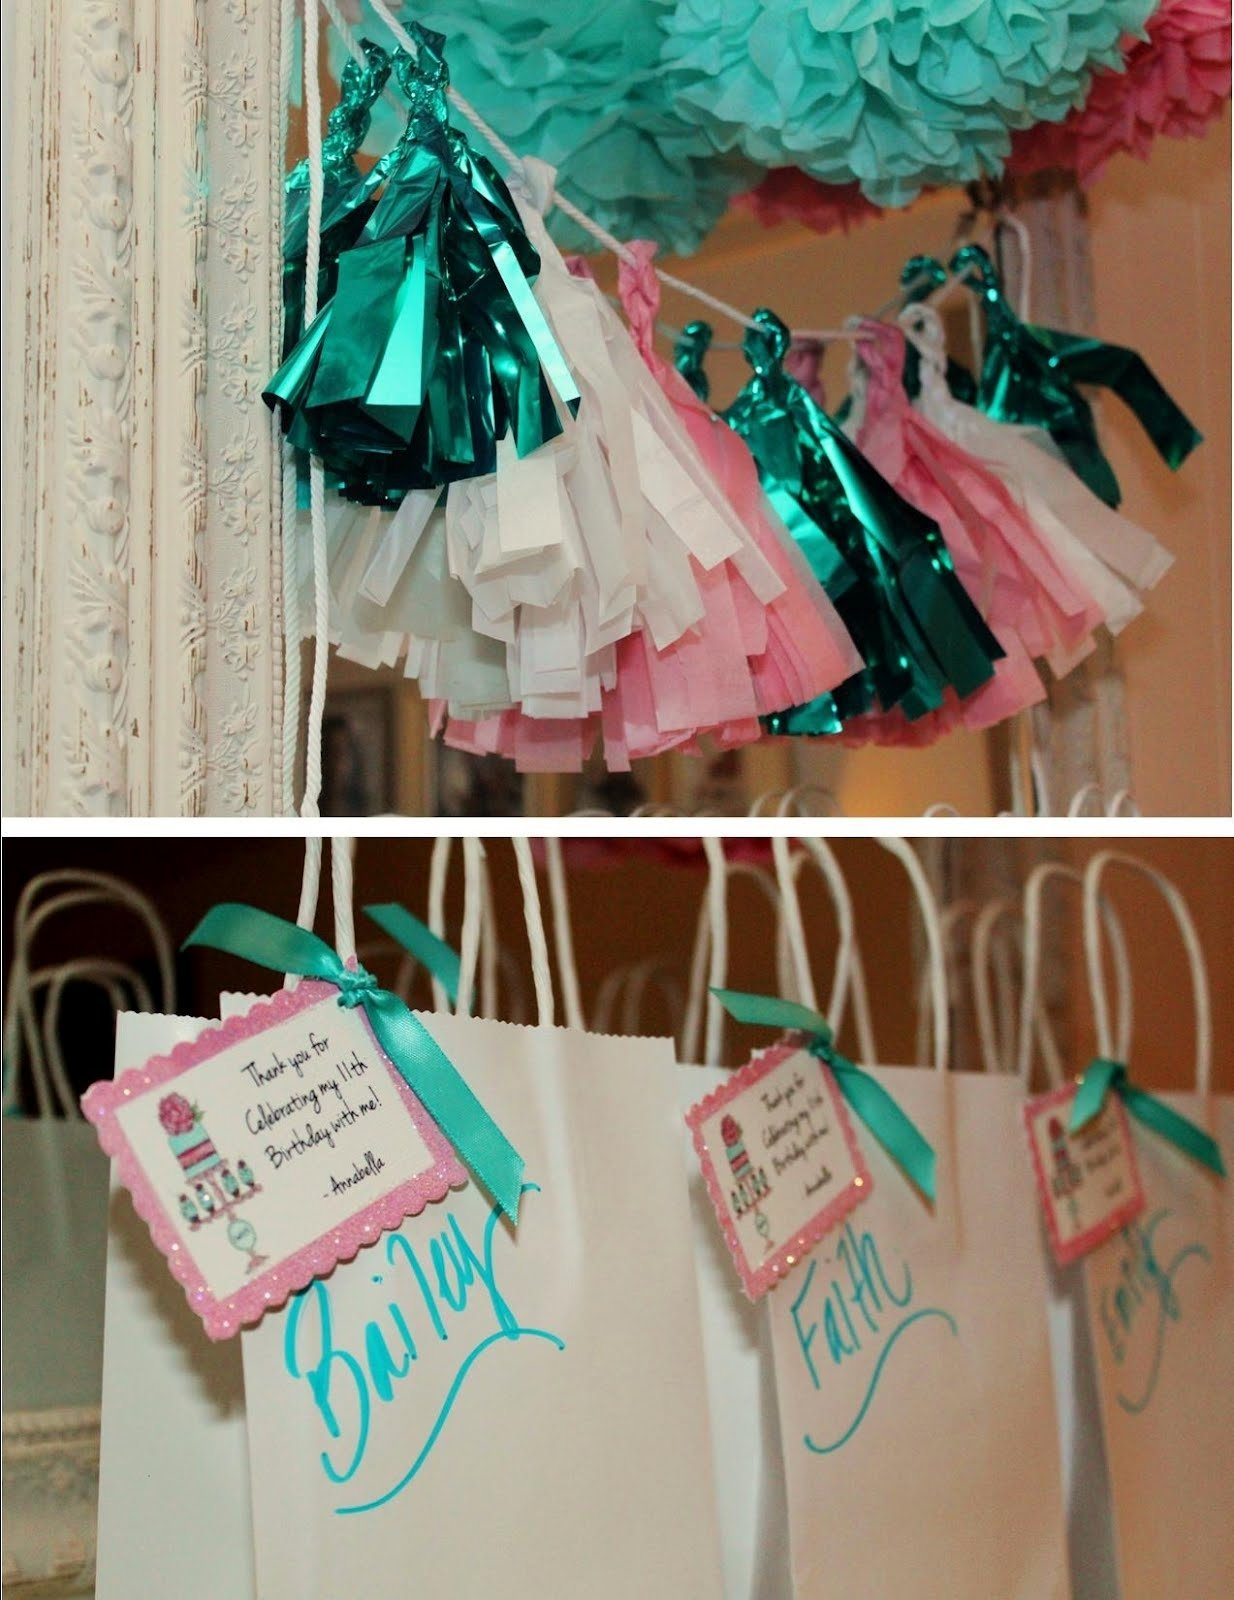 10 Stylish 11 Year Old Birthday Party Ideas For Girls icing designs sweet sleepover 11th birthday party 9 2020